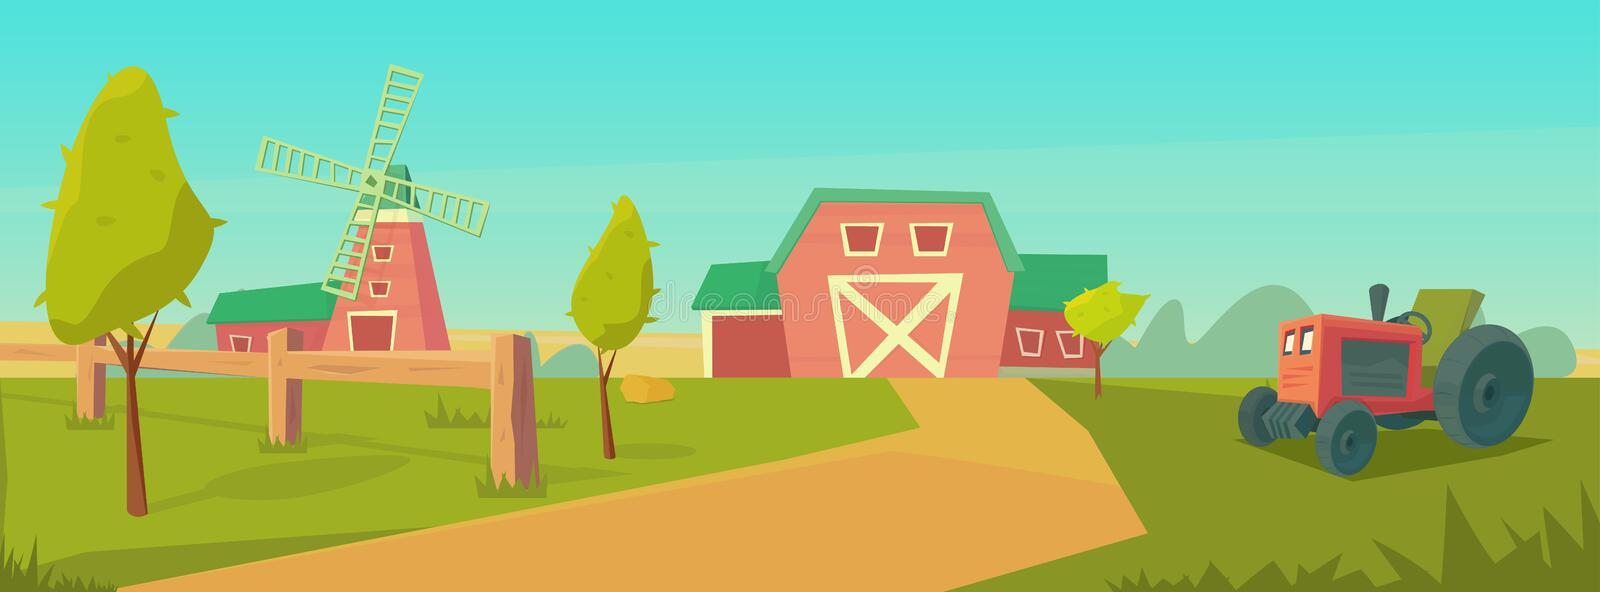 Agriculture. Farm rural landscape with red barn, tractor and windmill. Vector cartoon illustration stock illustration